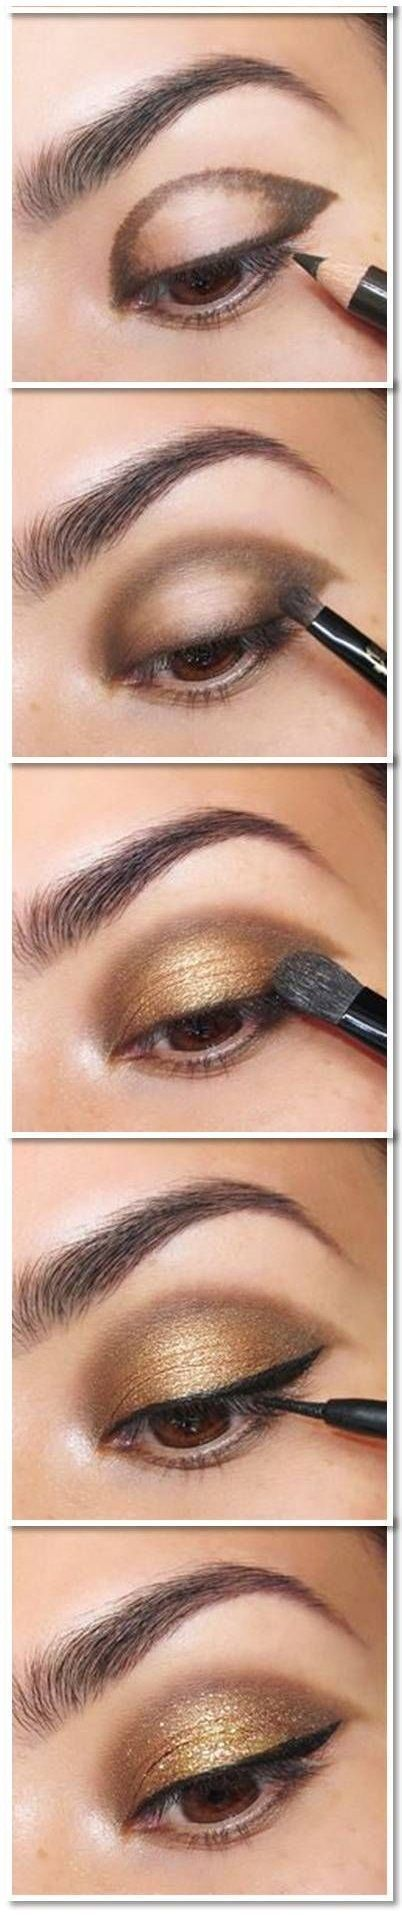 10 gold smoky eye tutorials for fall smokey eye steps brown 10 gold smoky eye tutorials for fall how to apply eyeshadowbest ccuart Images